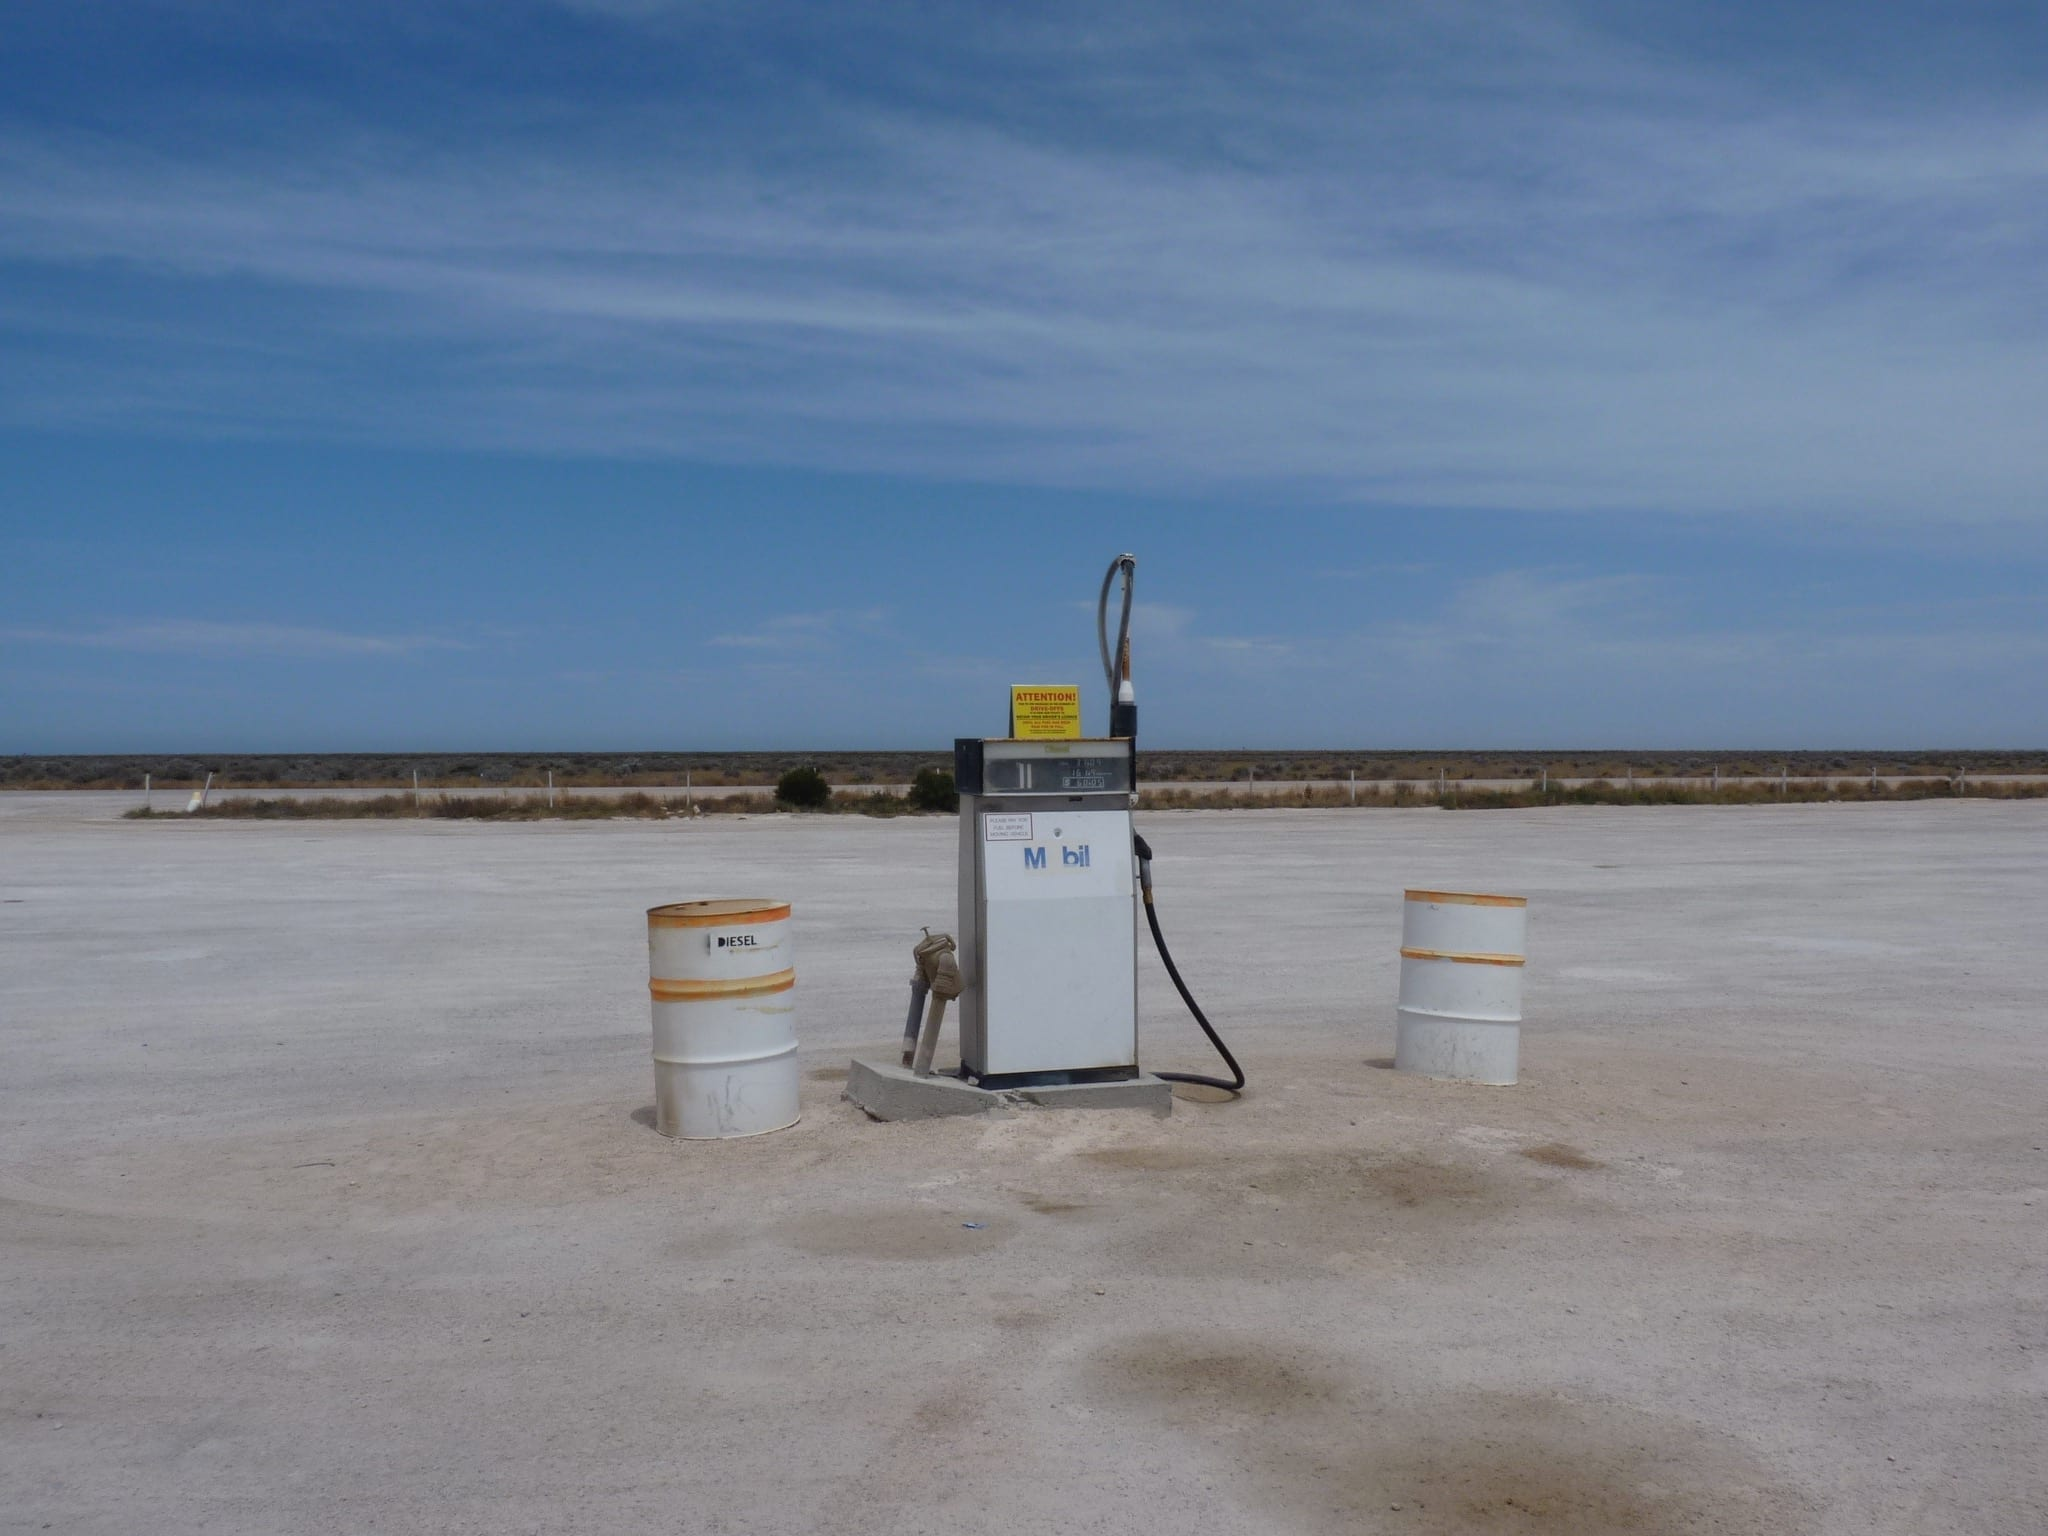 Fuel Pump Nullarbor Roadhouse South Australia